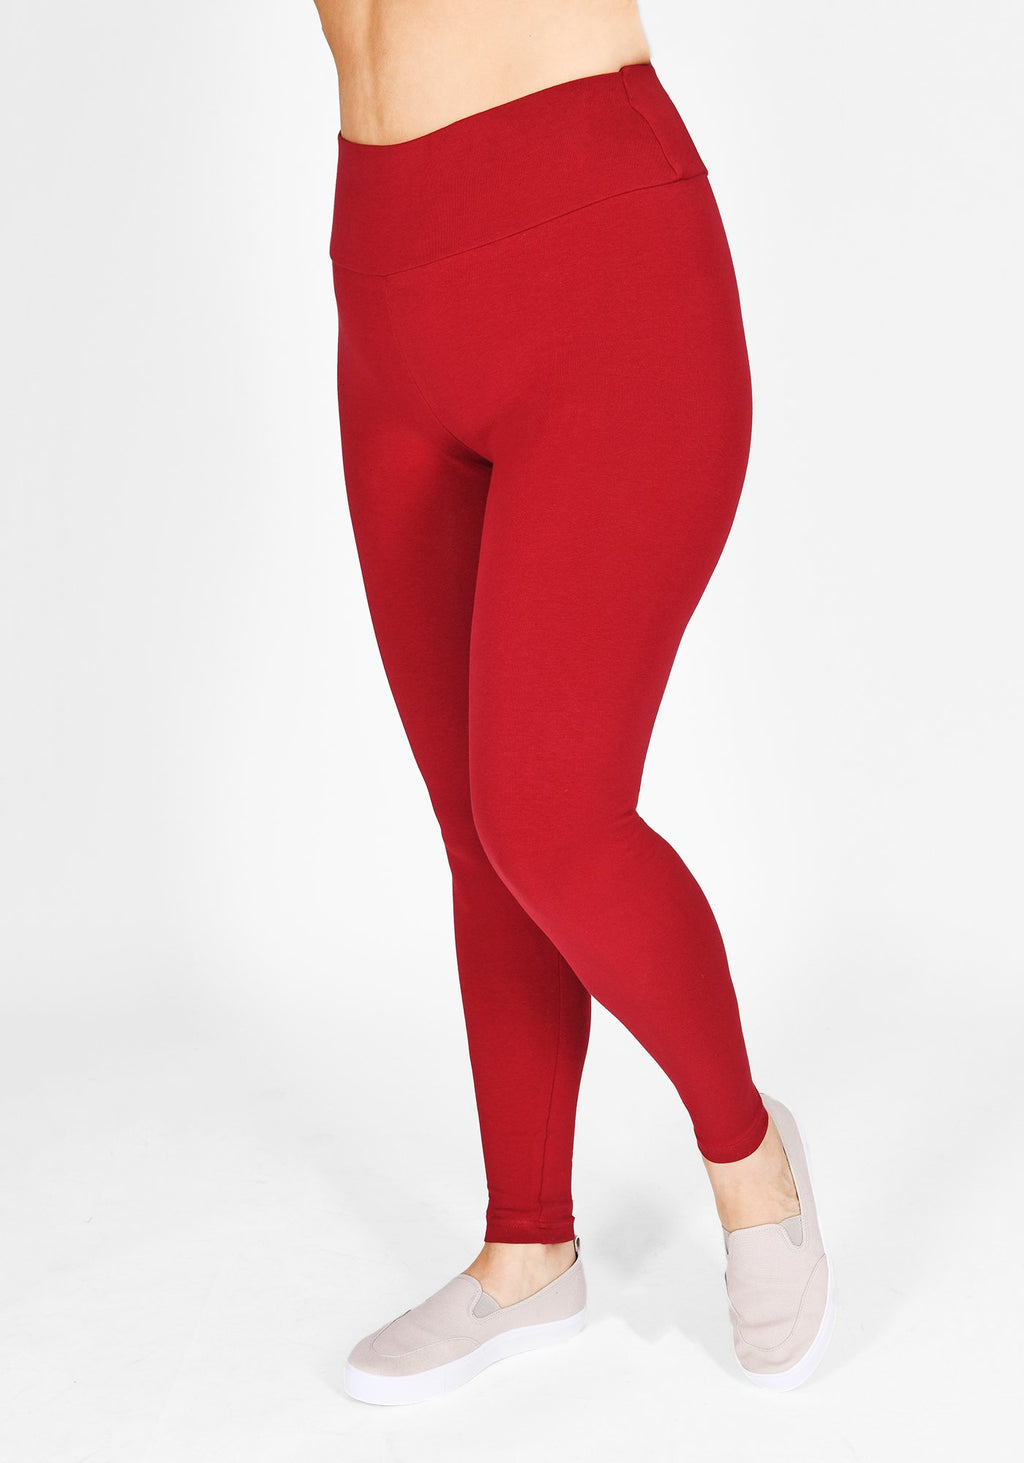 Plus Size Red Wine High Waisted Leggings 1